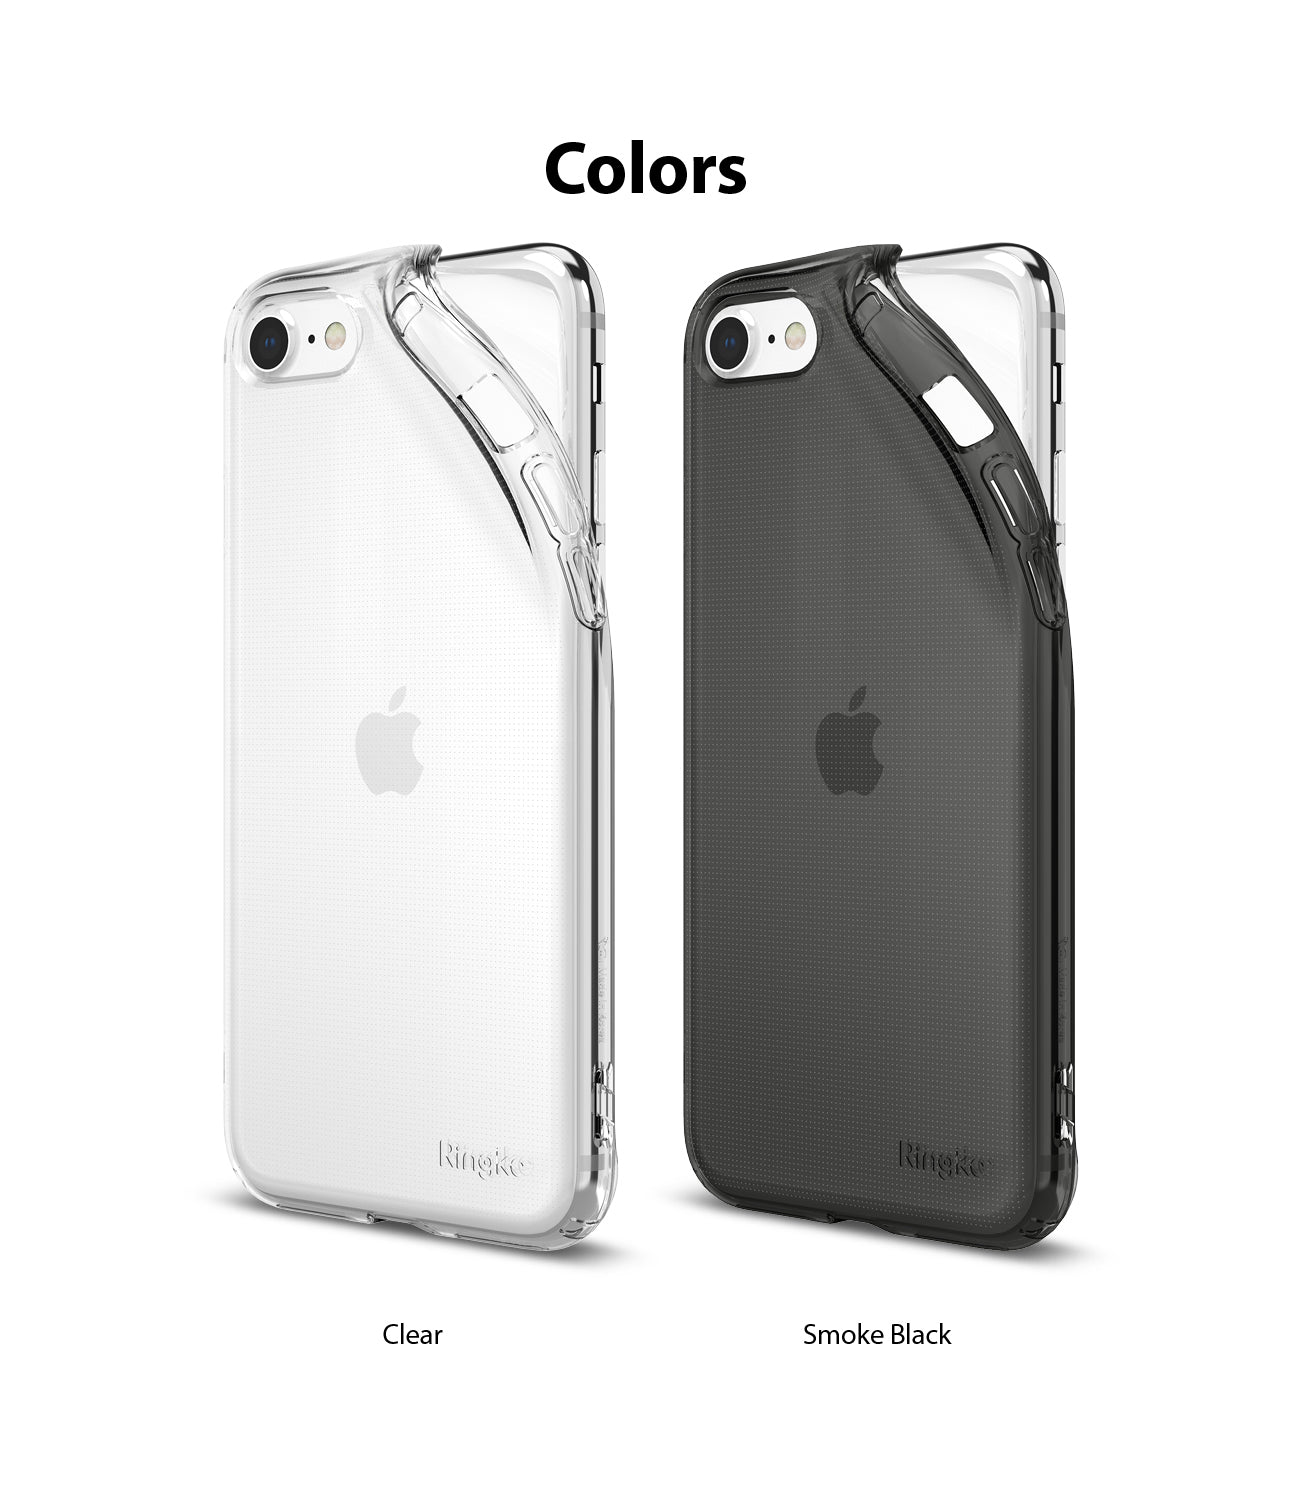 available in clear / smoke black. compatible with apple iphone 8 / SE 2020